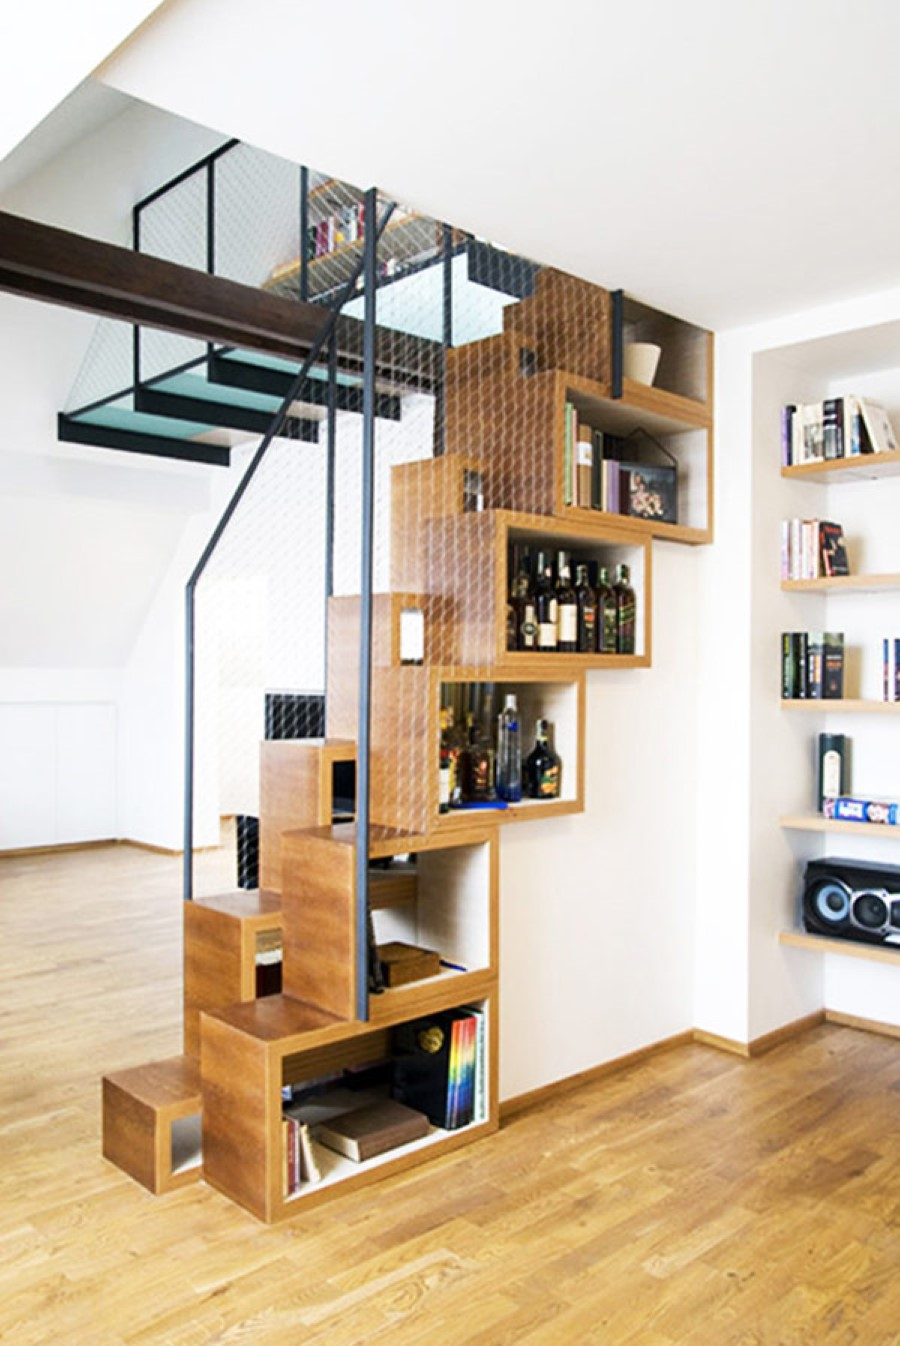 AD Inspiring Home Storage Solutions 18